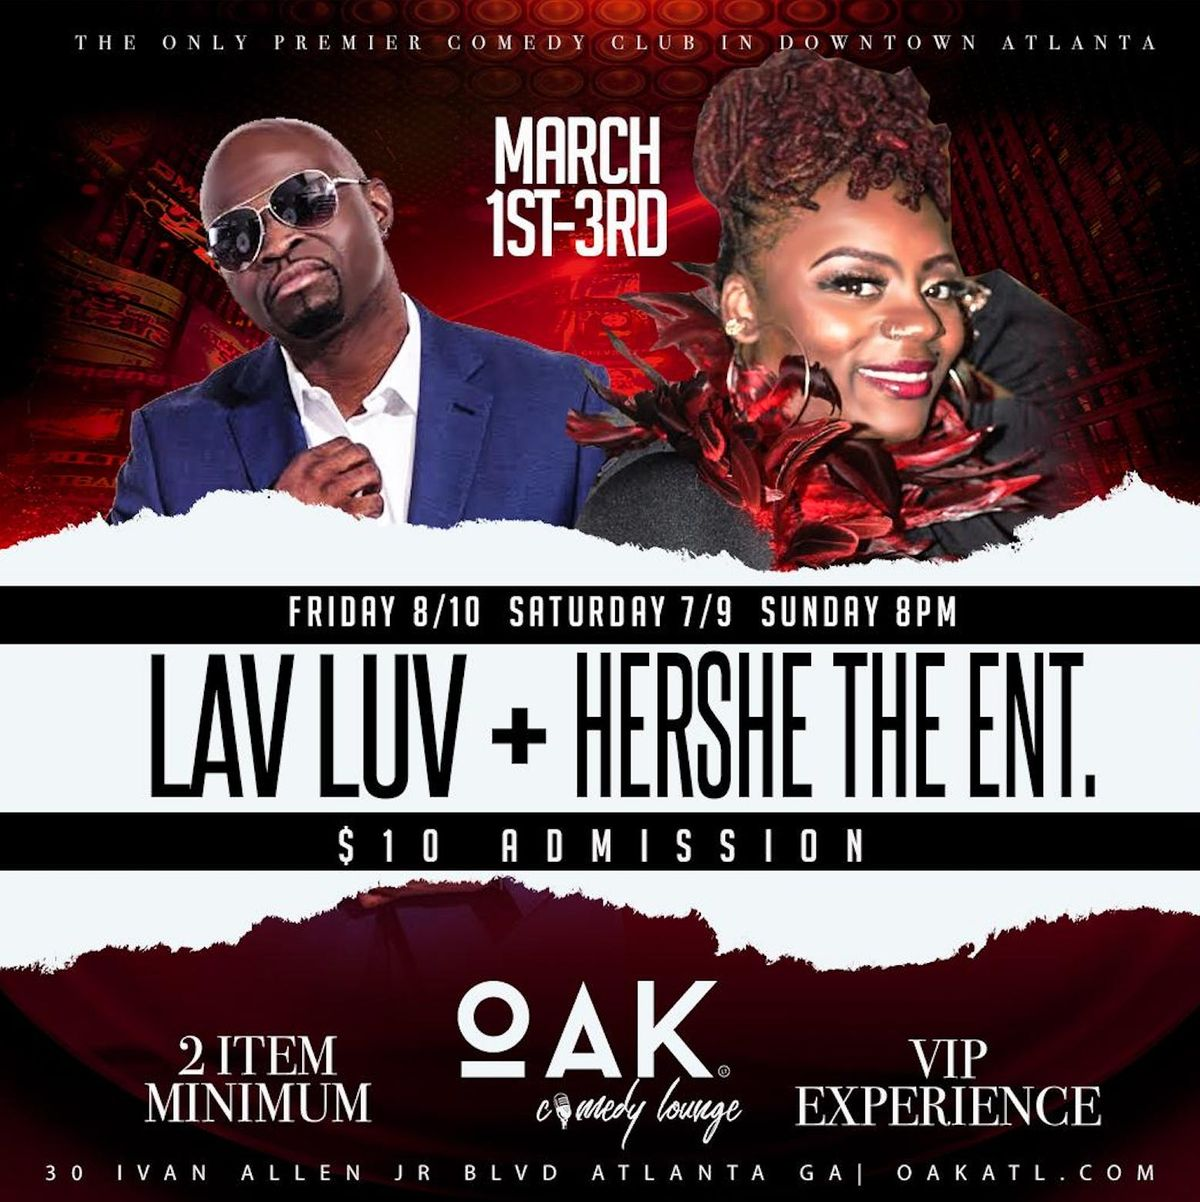 Lav Luv  Hershe the Ent at OAK Atlanta Comedy Live